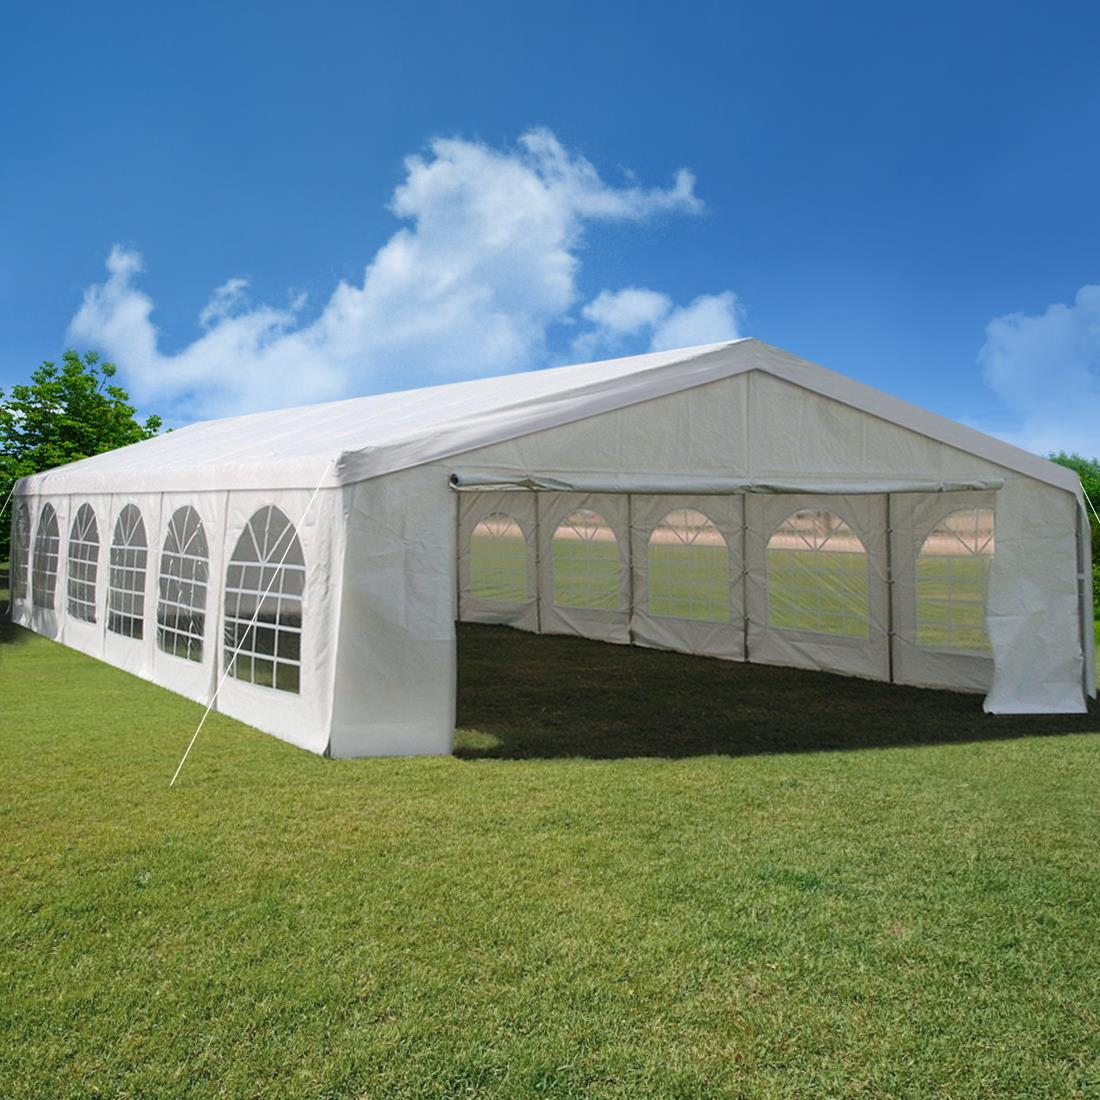 Peaktop-Heavy-Duty-Party-Tent-Event-Canopy-Gazebo-Wedding-Tent-With-Carry-Bag thumbnail 15